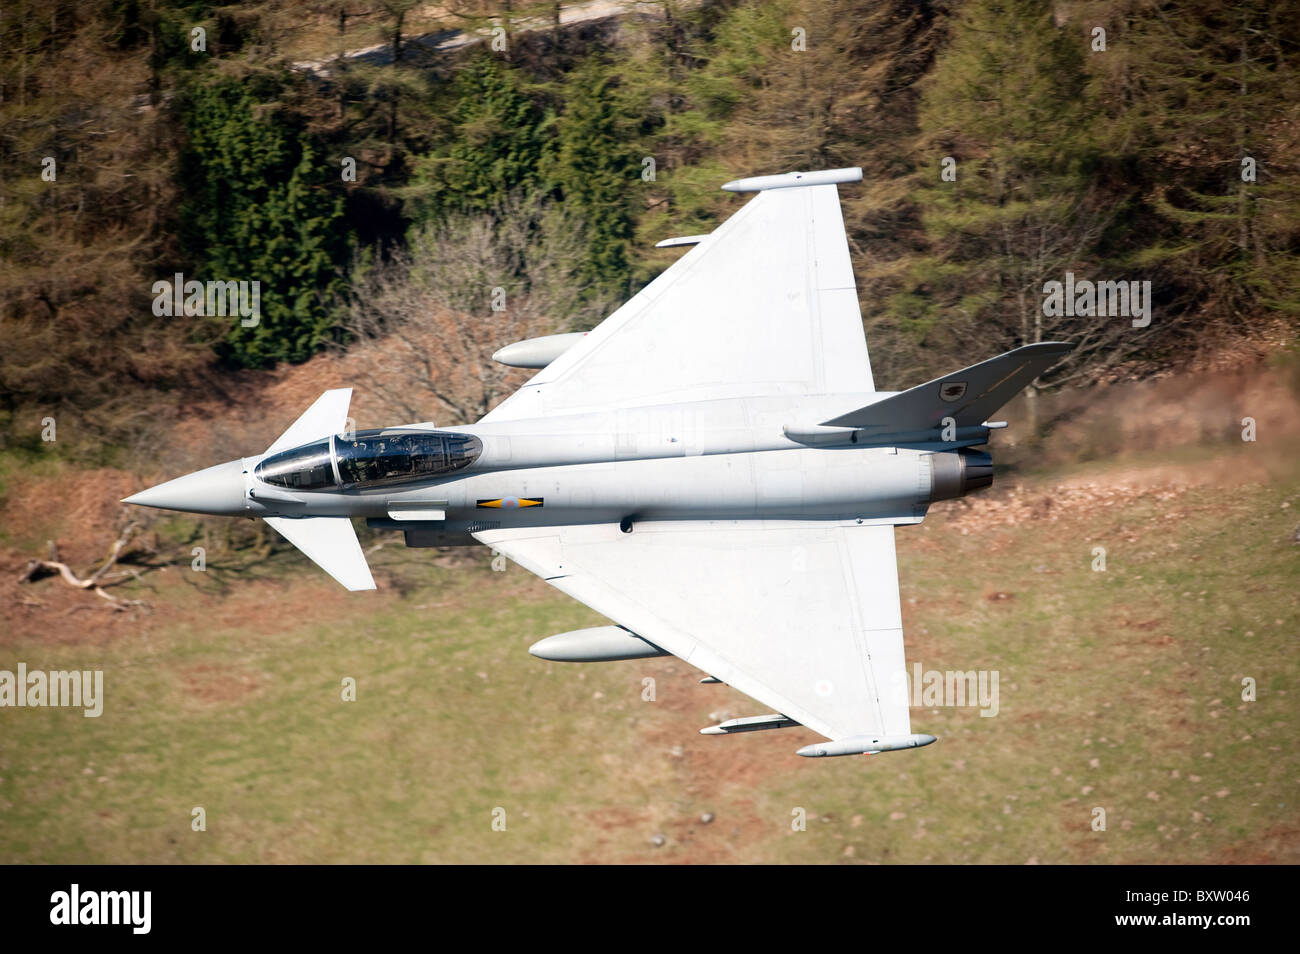 A Eurofighter Typhoon F2 aircraft of the Royal Air Force low flying over North Wales. Stock Photo